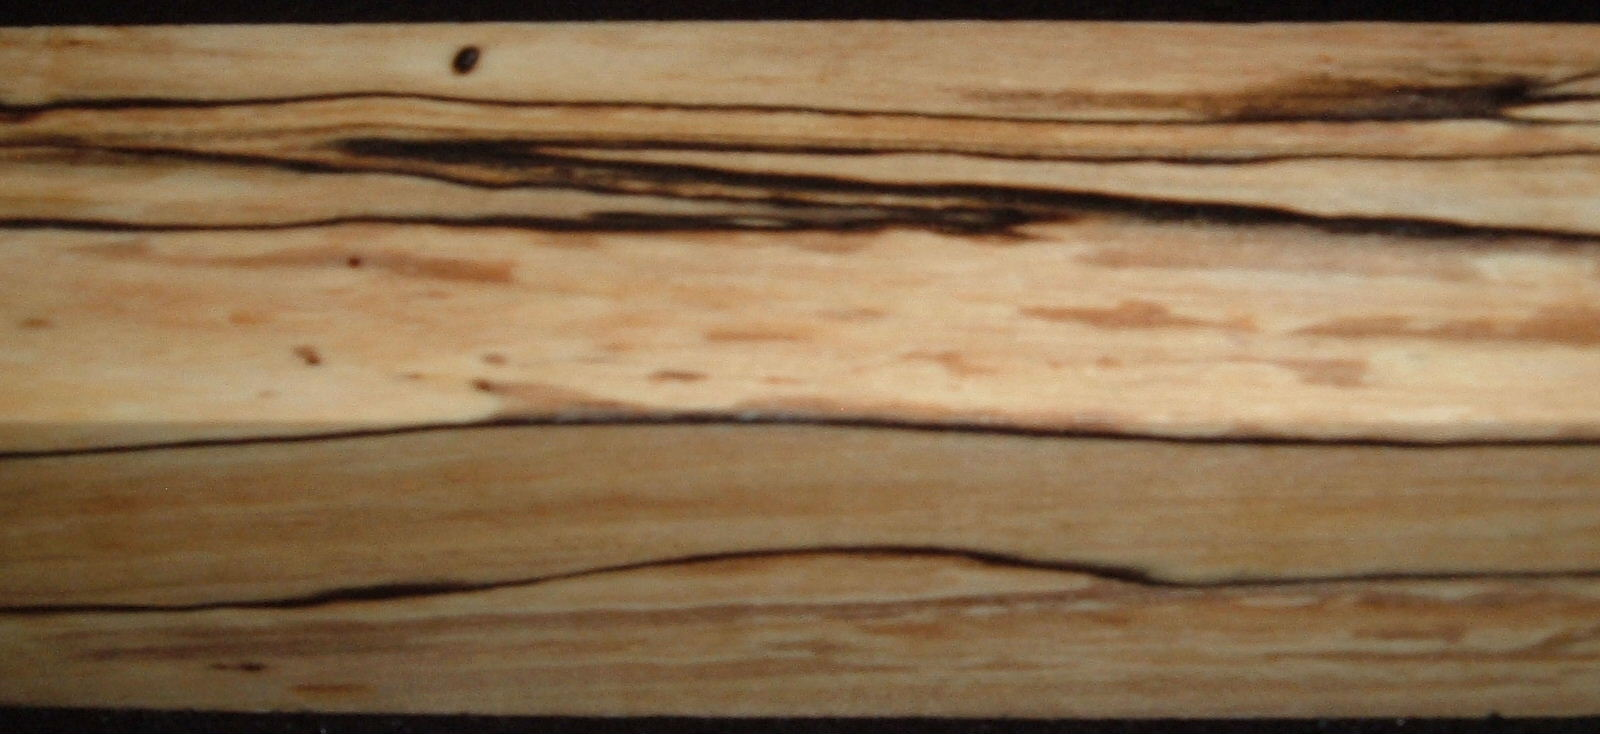 Z479, Spalted Maple Dyed Stabilized, wood turning block, Clear, 1-5/8x1-5/8x7-1/4